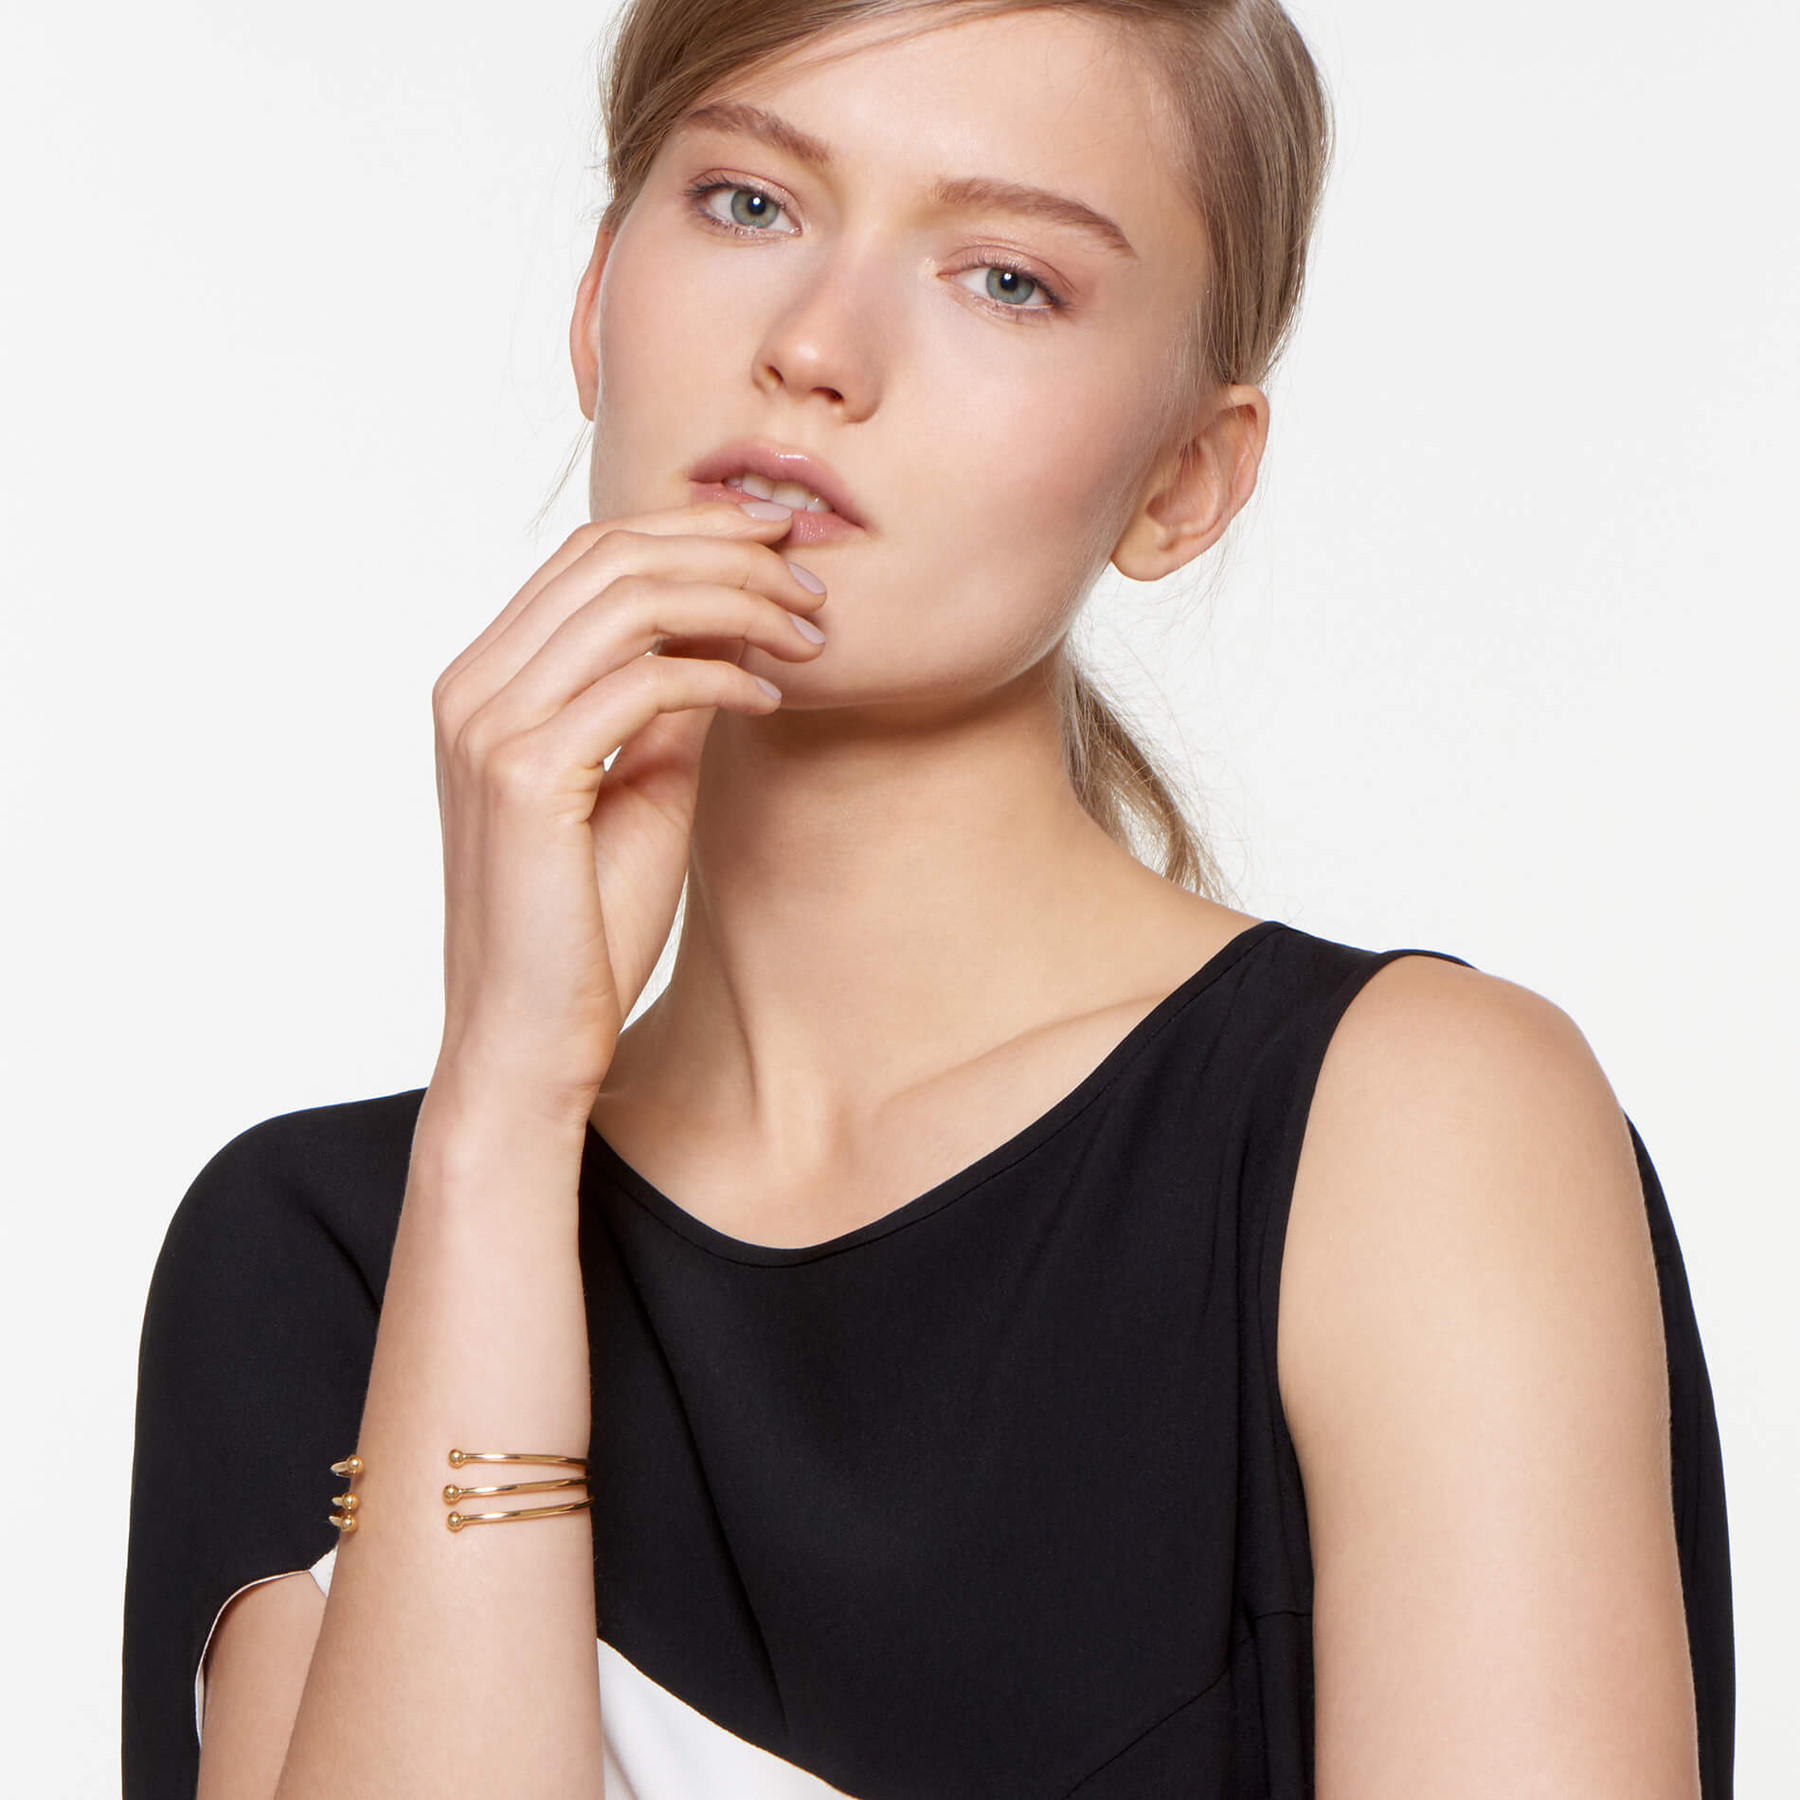 gorgeous blonde modeling 22 karat gold cuff with small globes